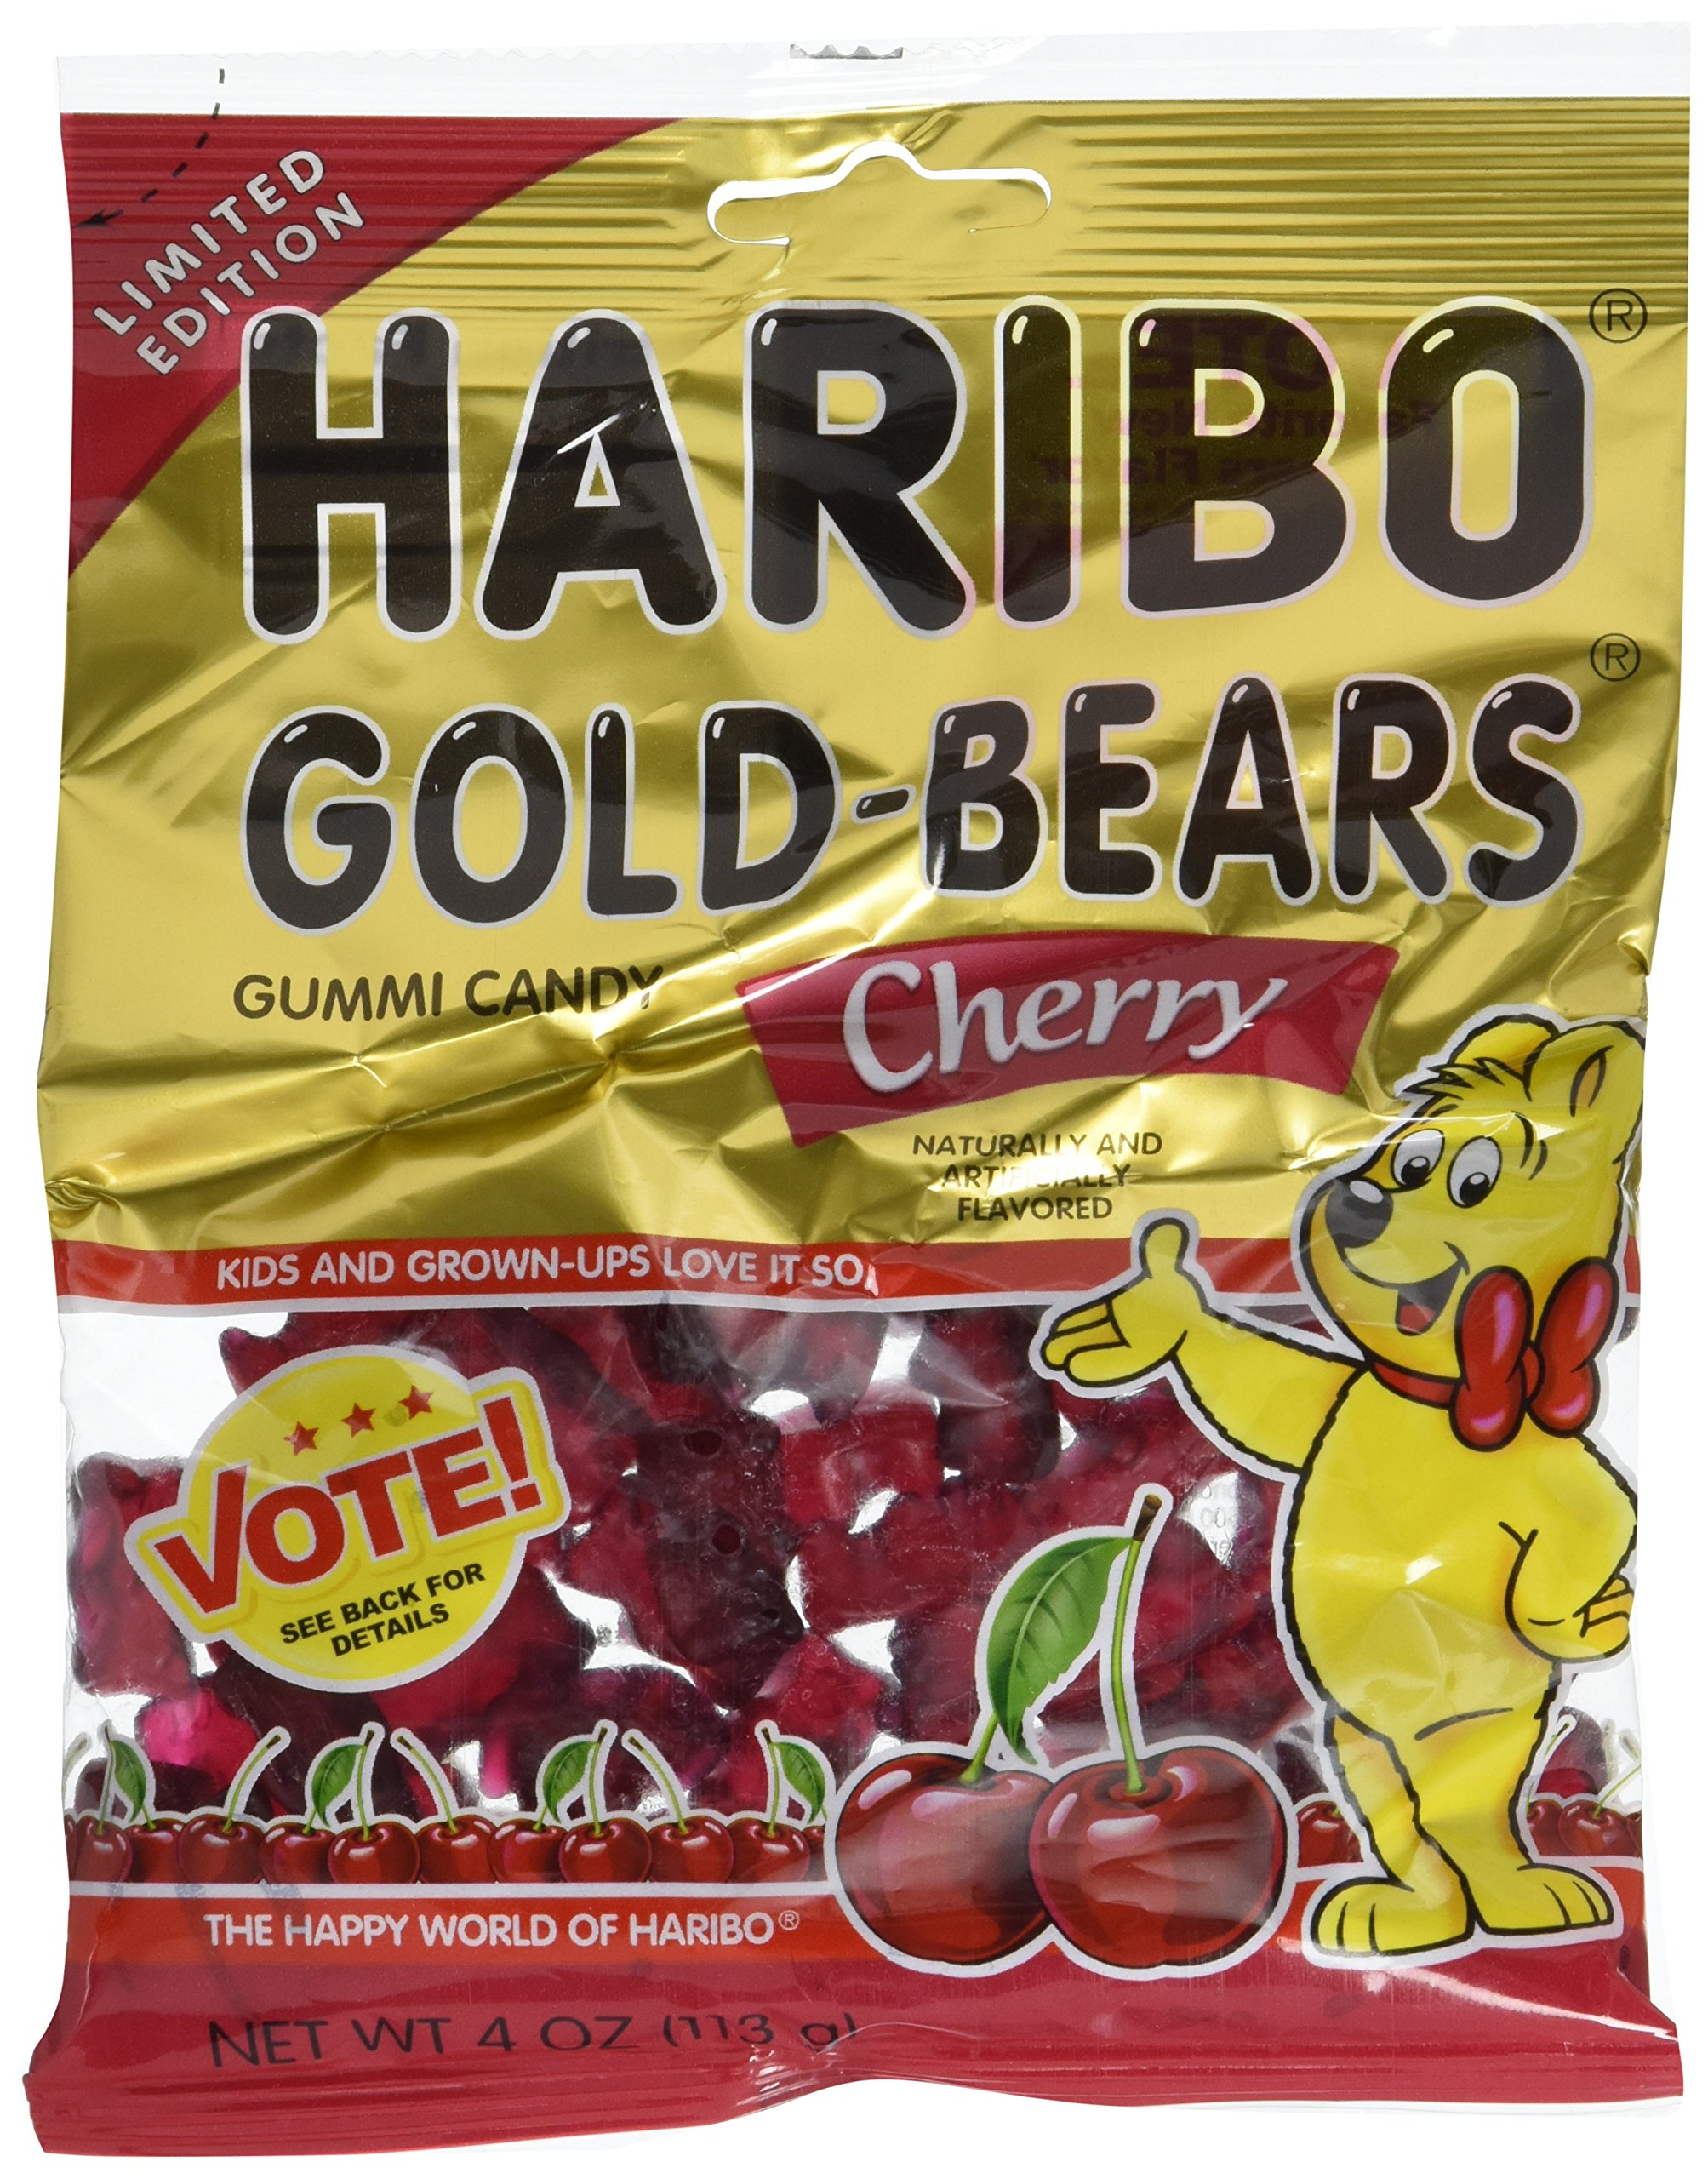 Haribo gummy bears are just one of many products that thomas - Haribo Gold Bears Gummi Candy Limited Edition Cherry Flavor 4 Ounce Bag